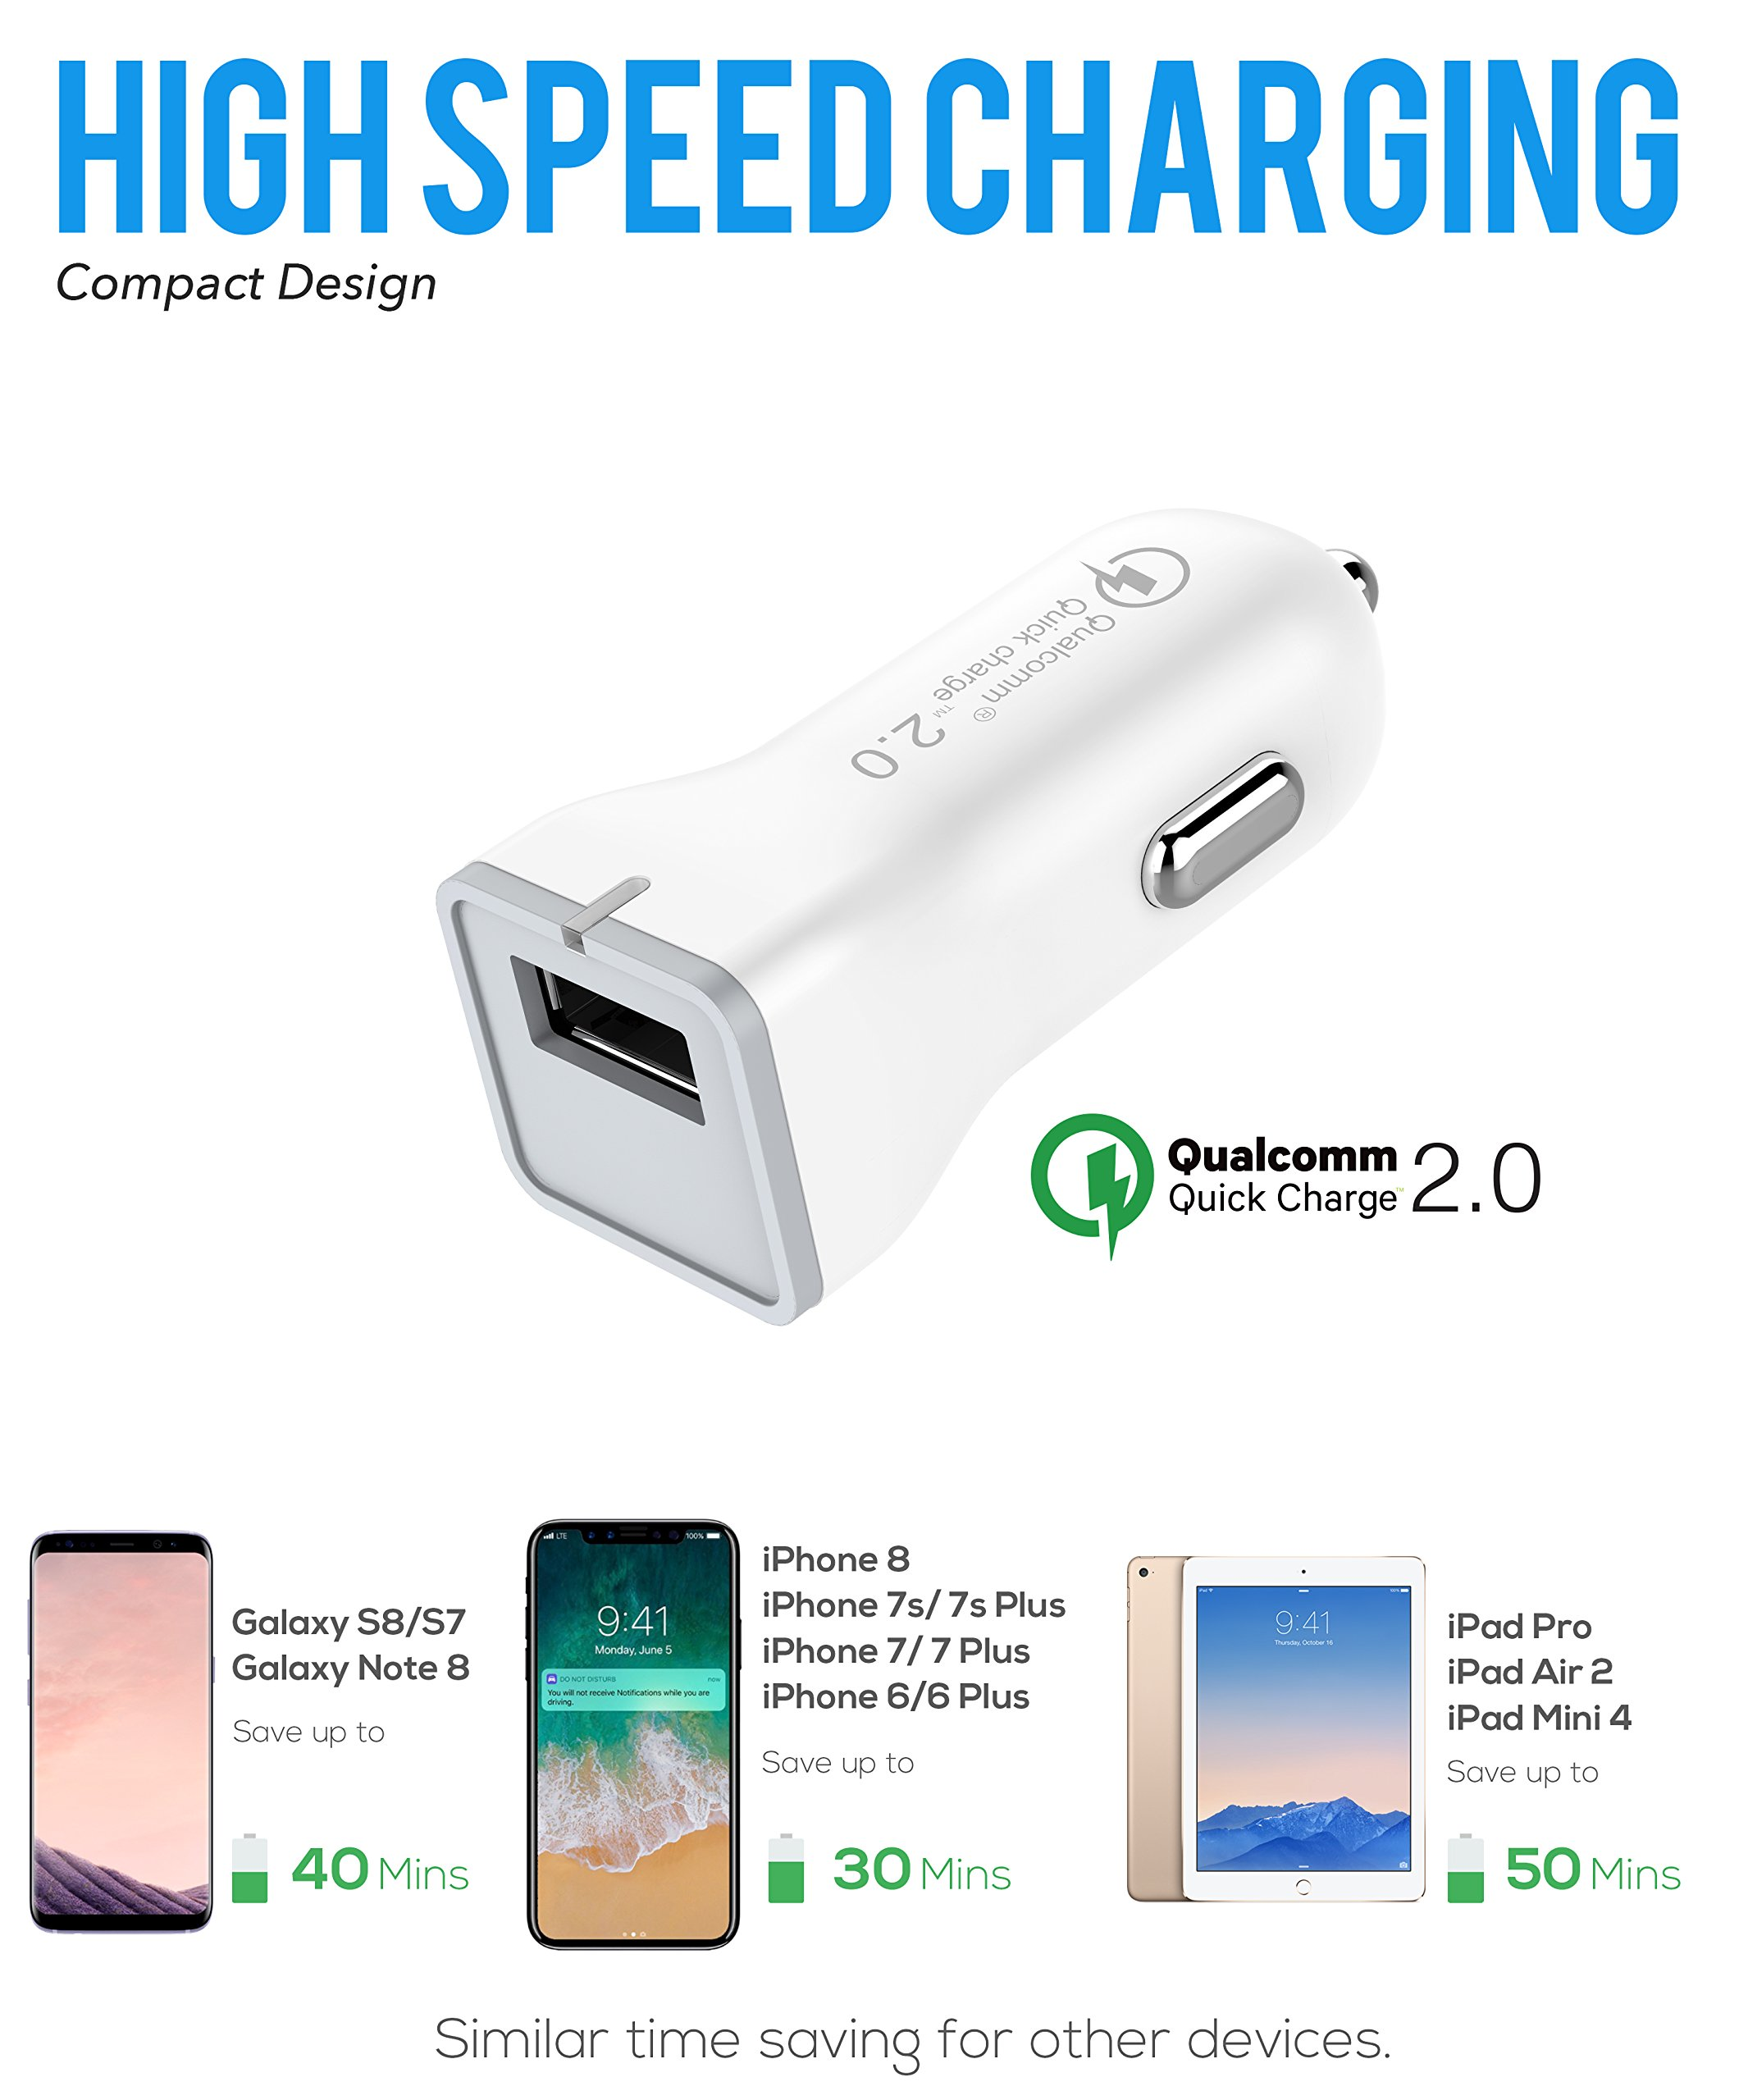 Ixir Quick Charge Wall Charger Set for Google Pixel 3, Pixel 4, Pixel 3 XL, Pixel 2, Pixel 2 XL, Power Adapter Fast Charger USB-C Cable, Wall Charger + Car Charger and 2X Type-C 4 FEET Cable, White by Ixir